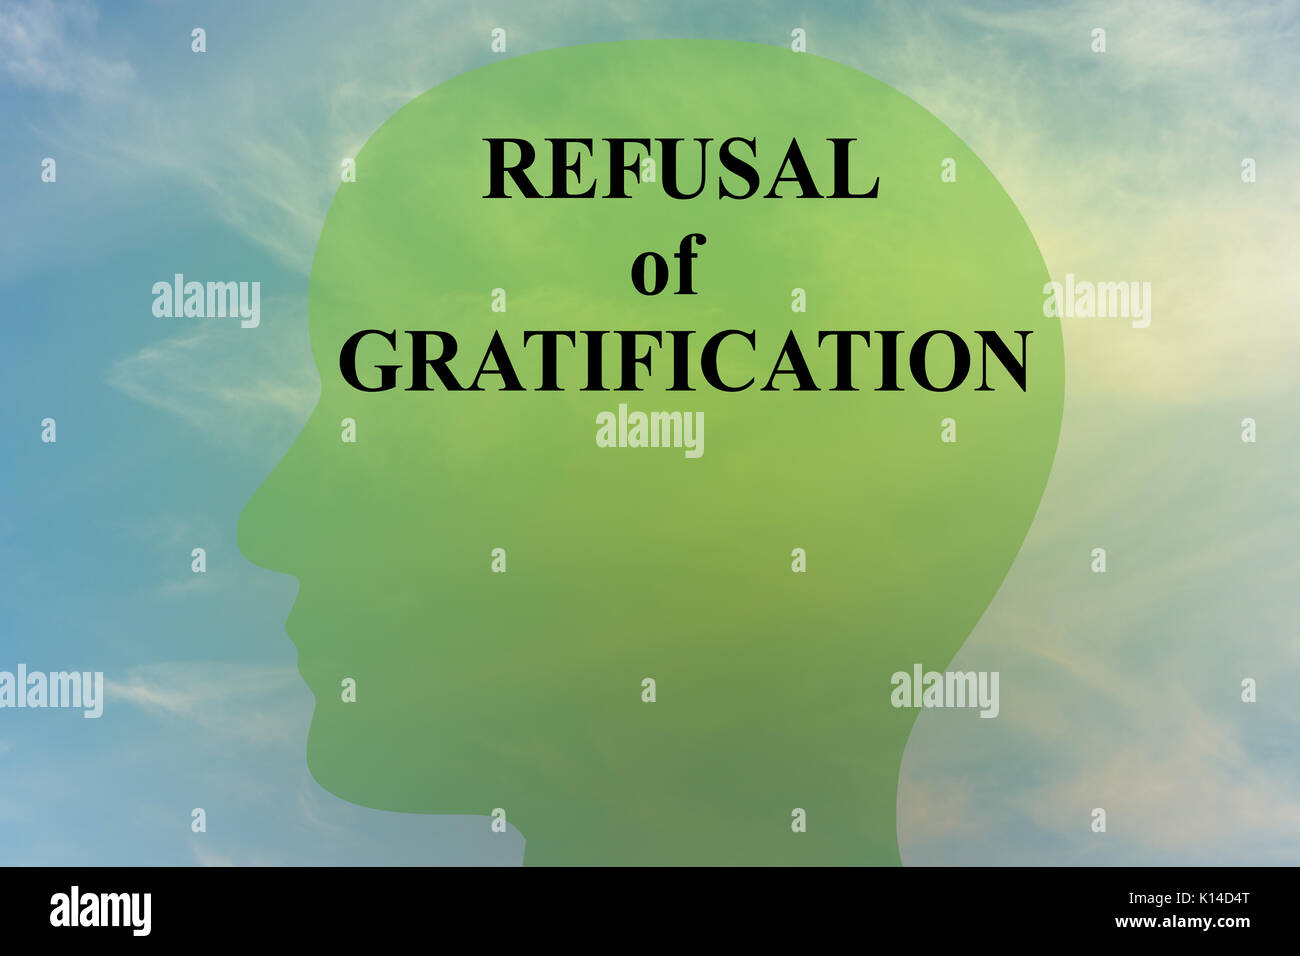 """Render illustration of """"REFUSAL of GRATIFICATION"""" script on head silhouette, with cloudy sky as a background. Stock Photo"""